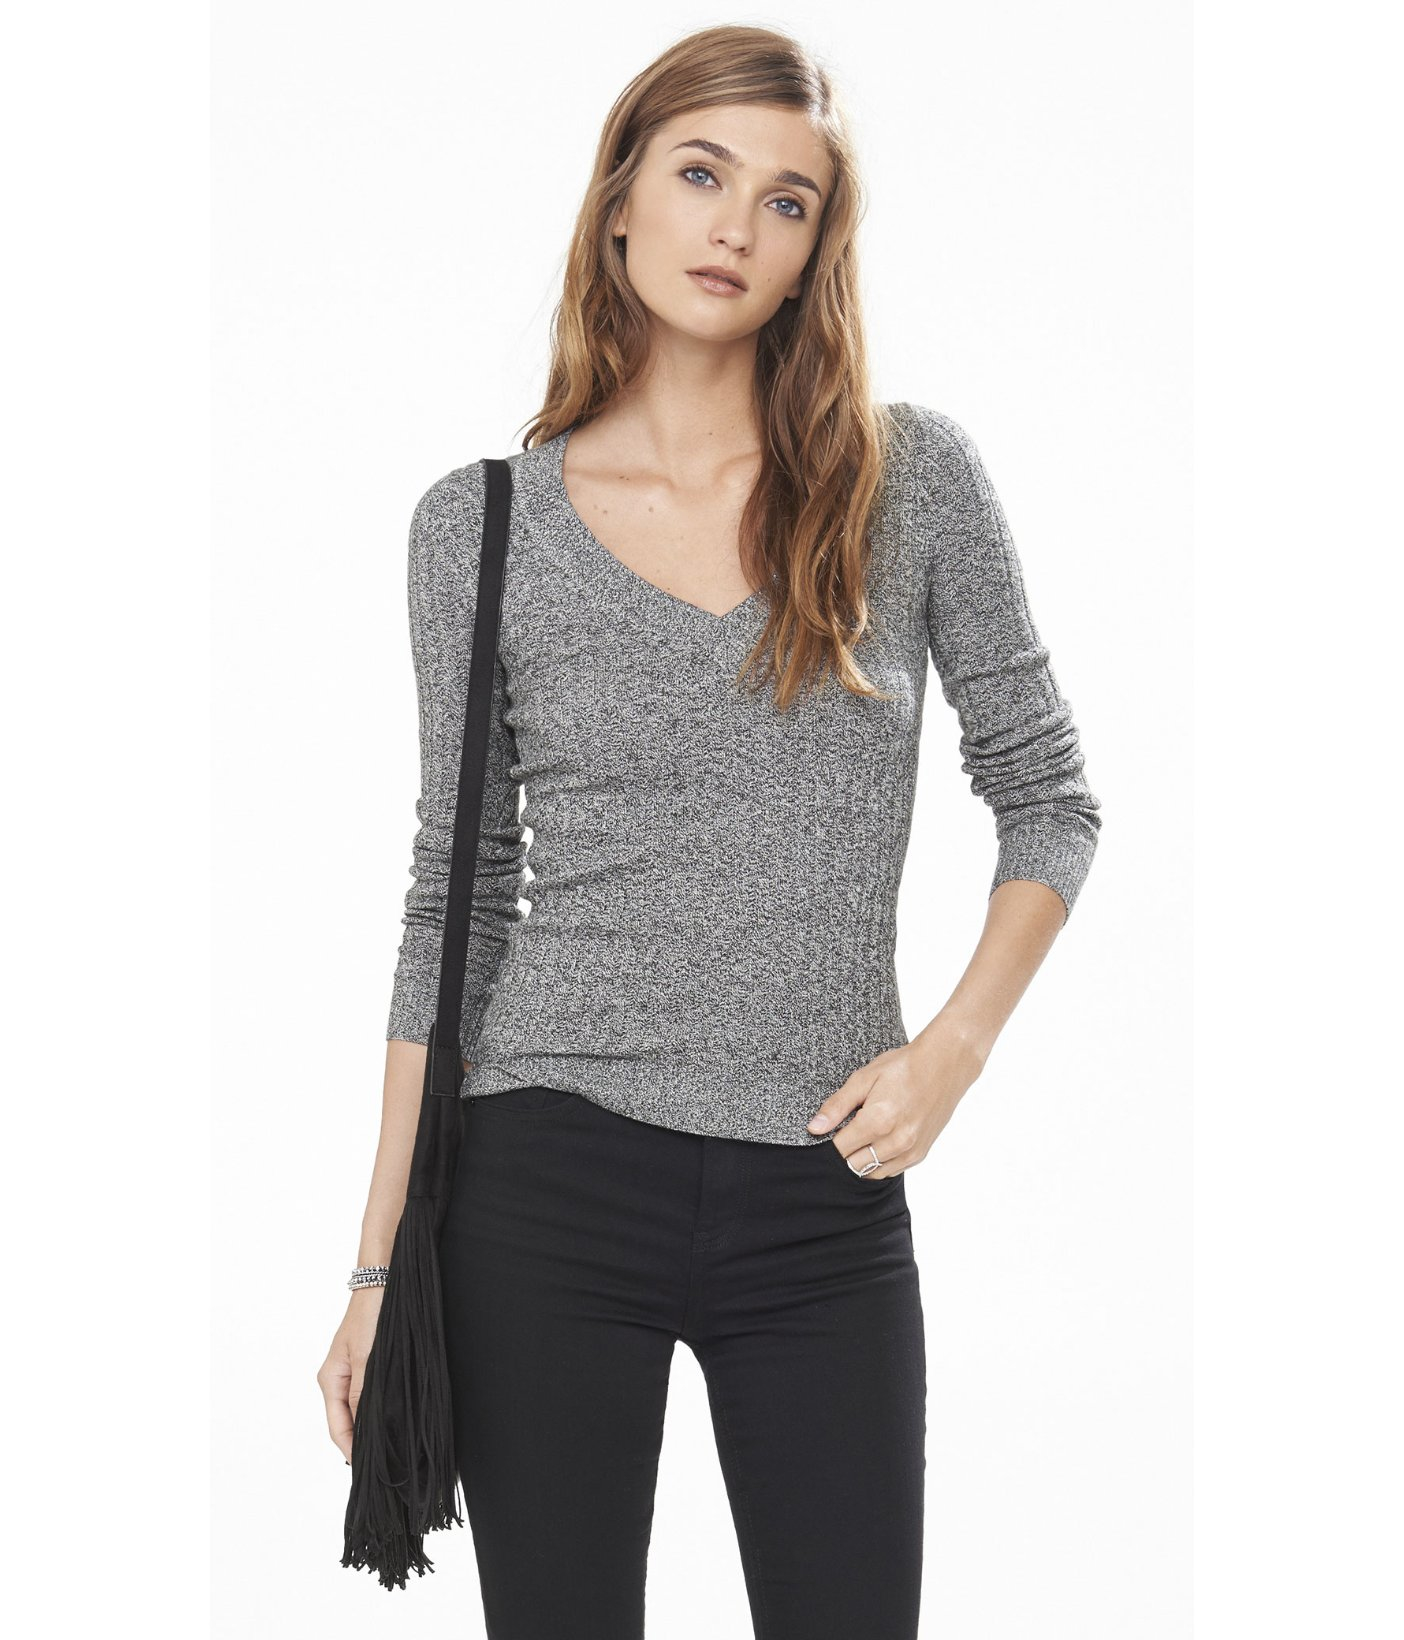 Express Marl Ribbed Fitted V-neck Sweater in Black | Lyst